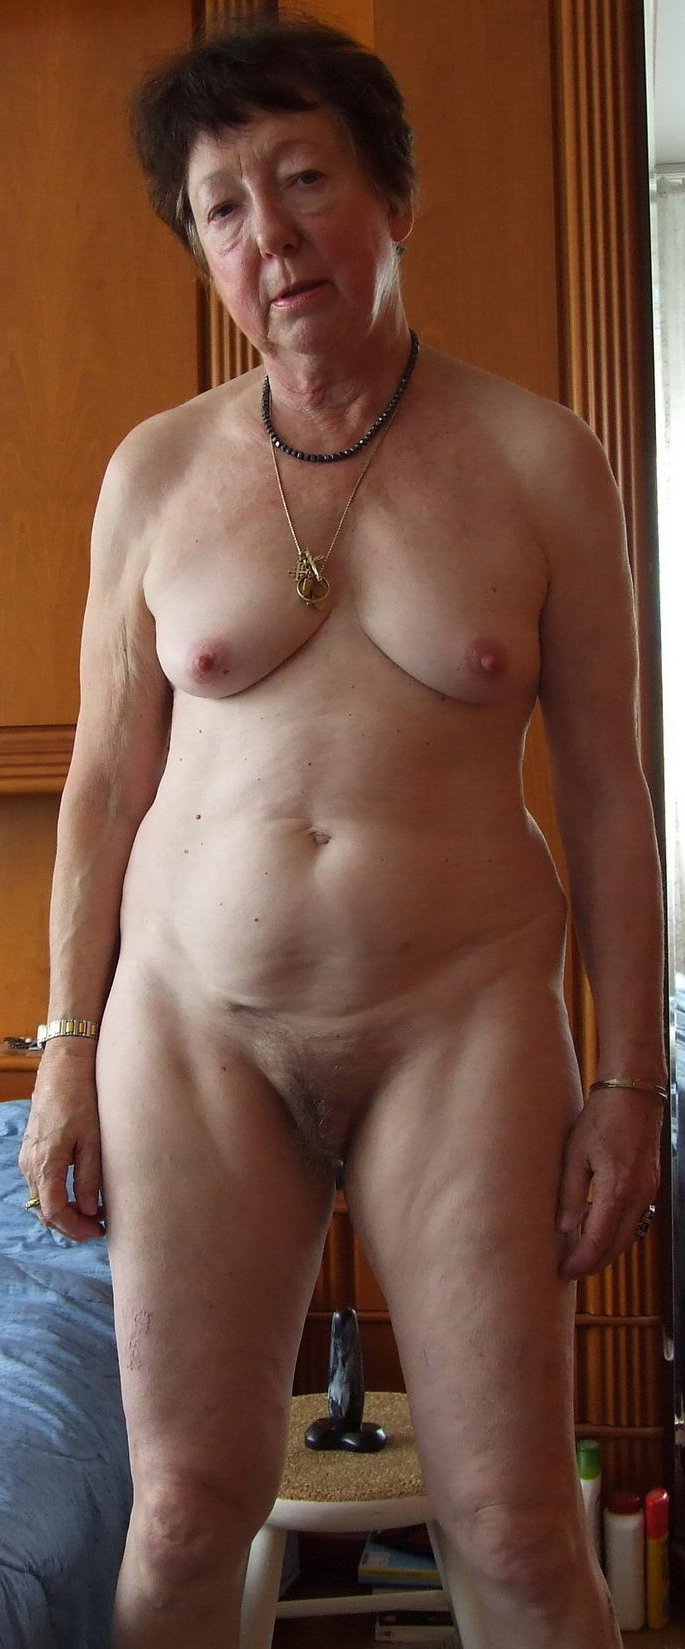 Elderly pictures women naked of Category:Front views